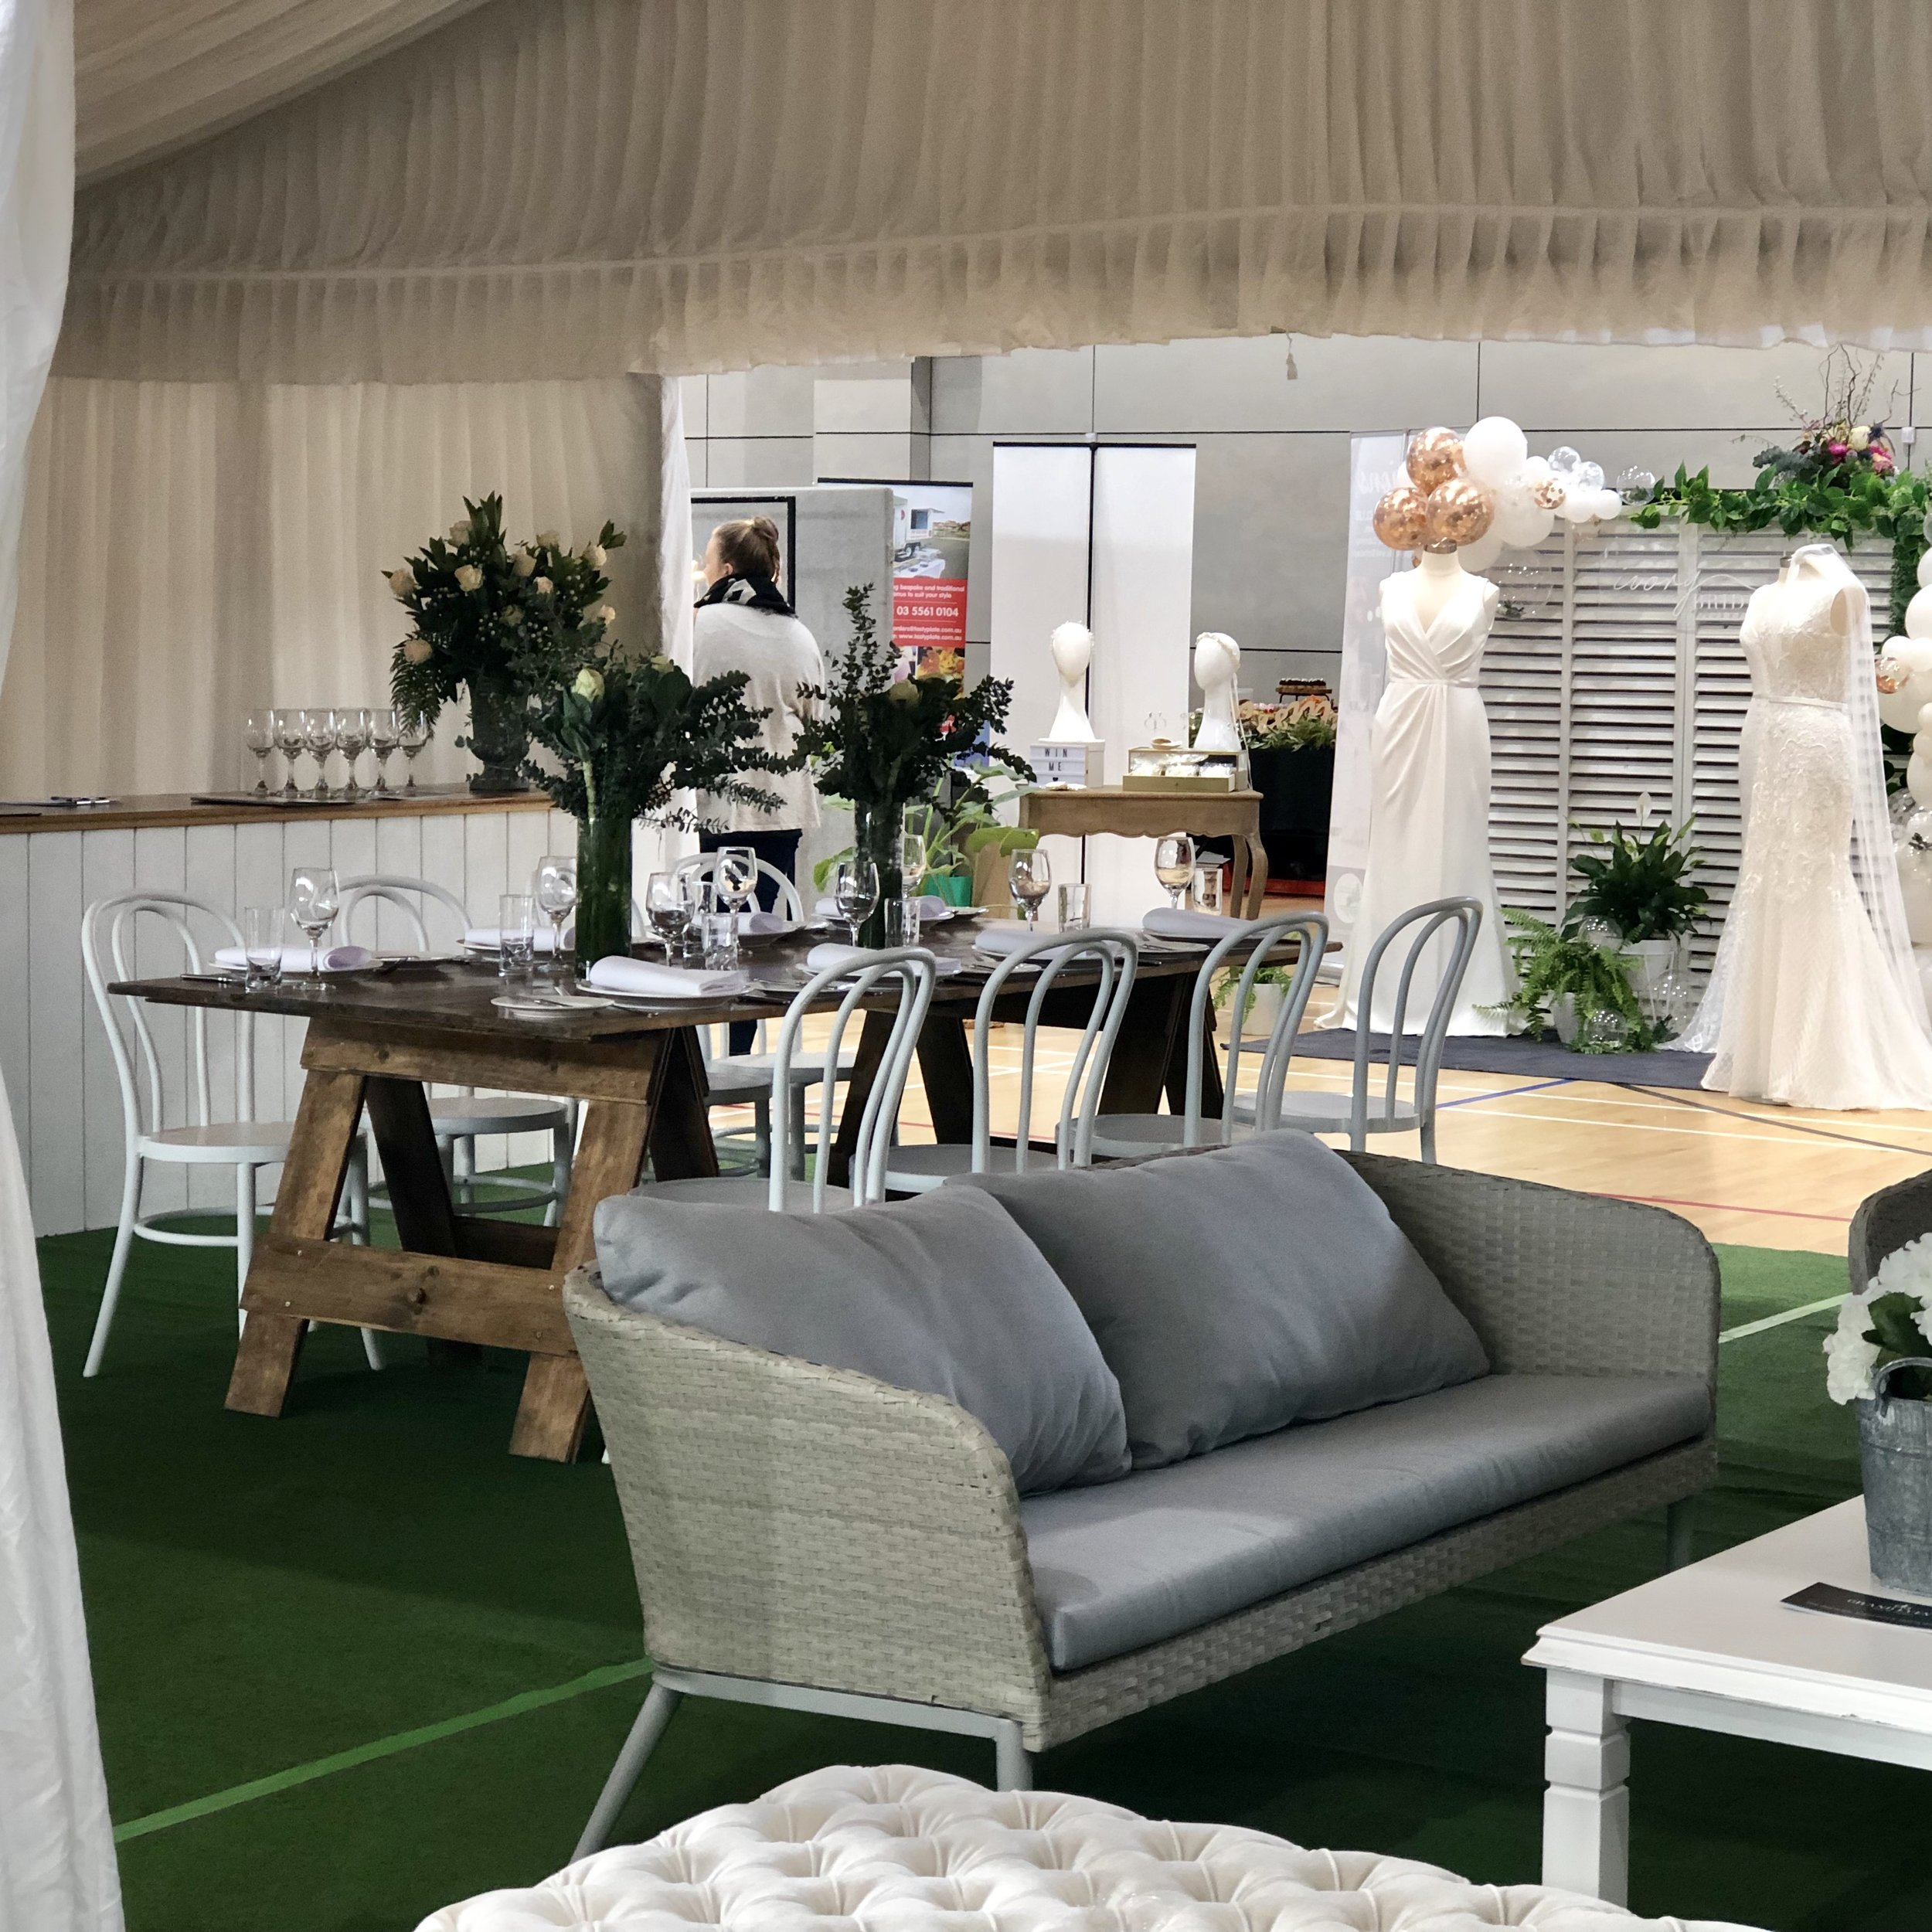 Warrnambool Bridal Expo - Grand Events Furniture Hire